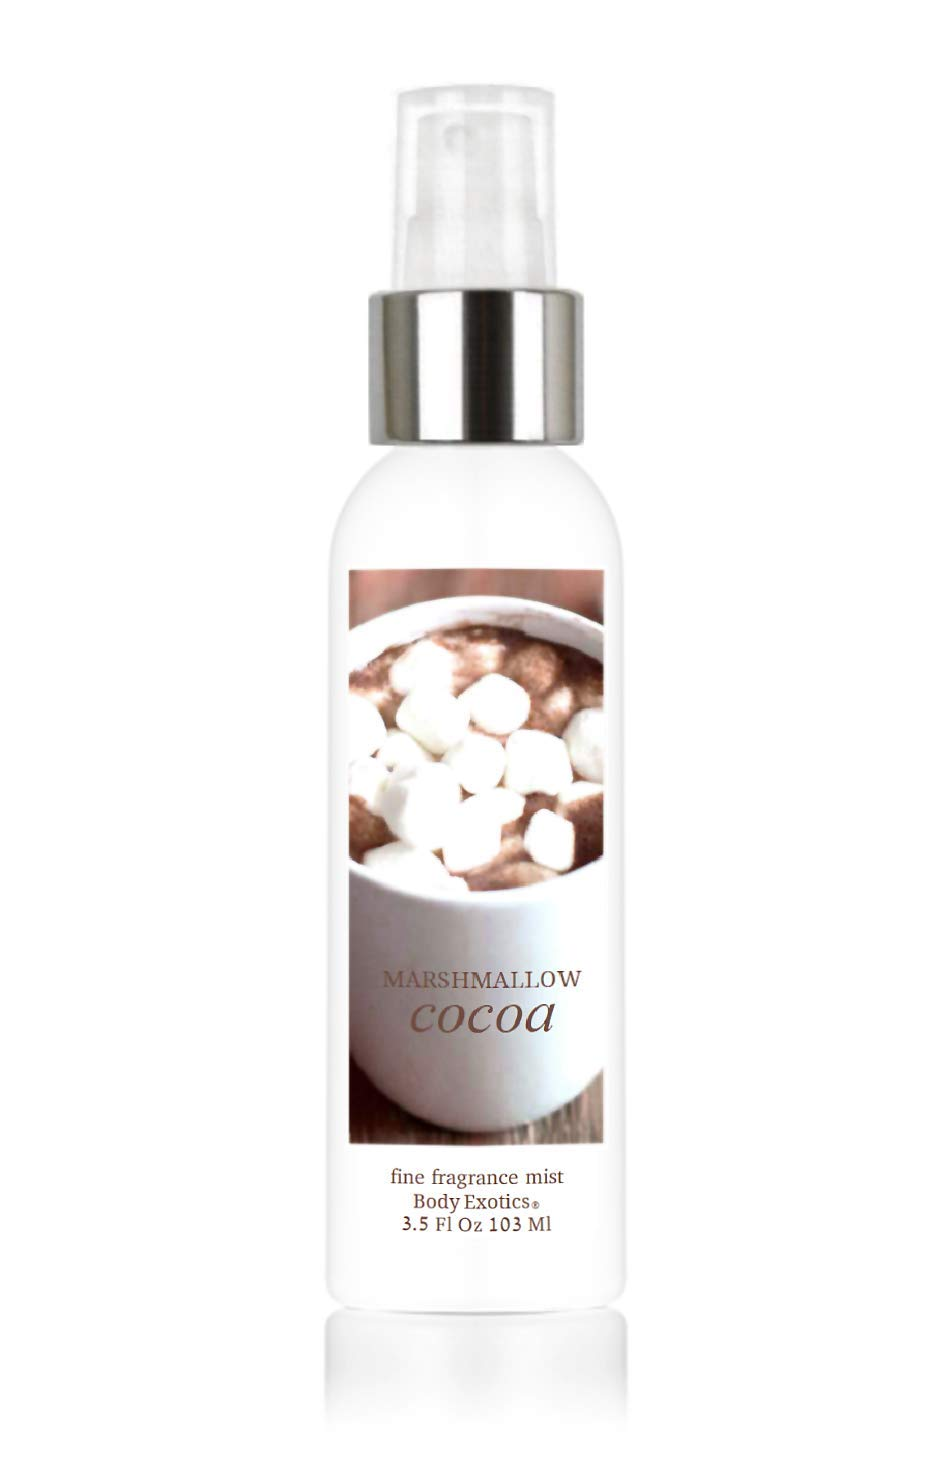 """Marshmallow Cocoa Perfume Fine Fragrance Mist by Body Exotics 3.5 Fl Oz 103 Ml""""Two thumbs, way up!"""" - Perfect Fall Blend of Hot Cocoa, Melting Marshmallows & Whipped Cream"""